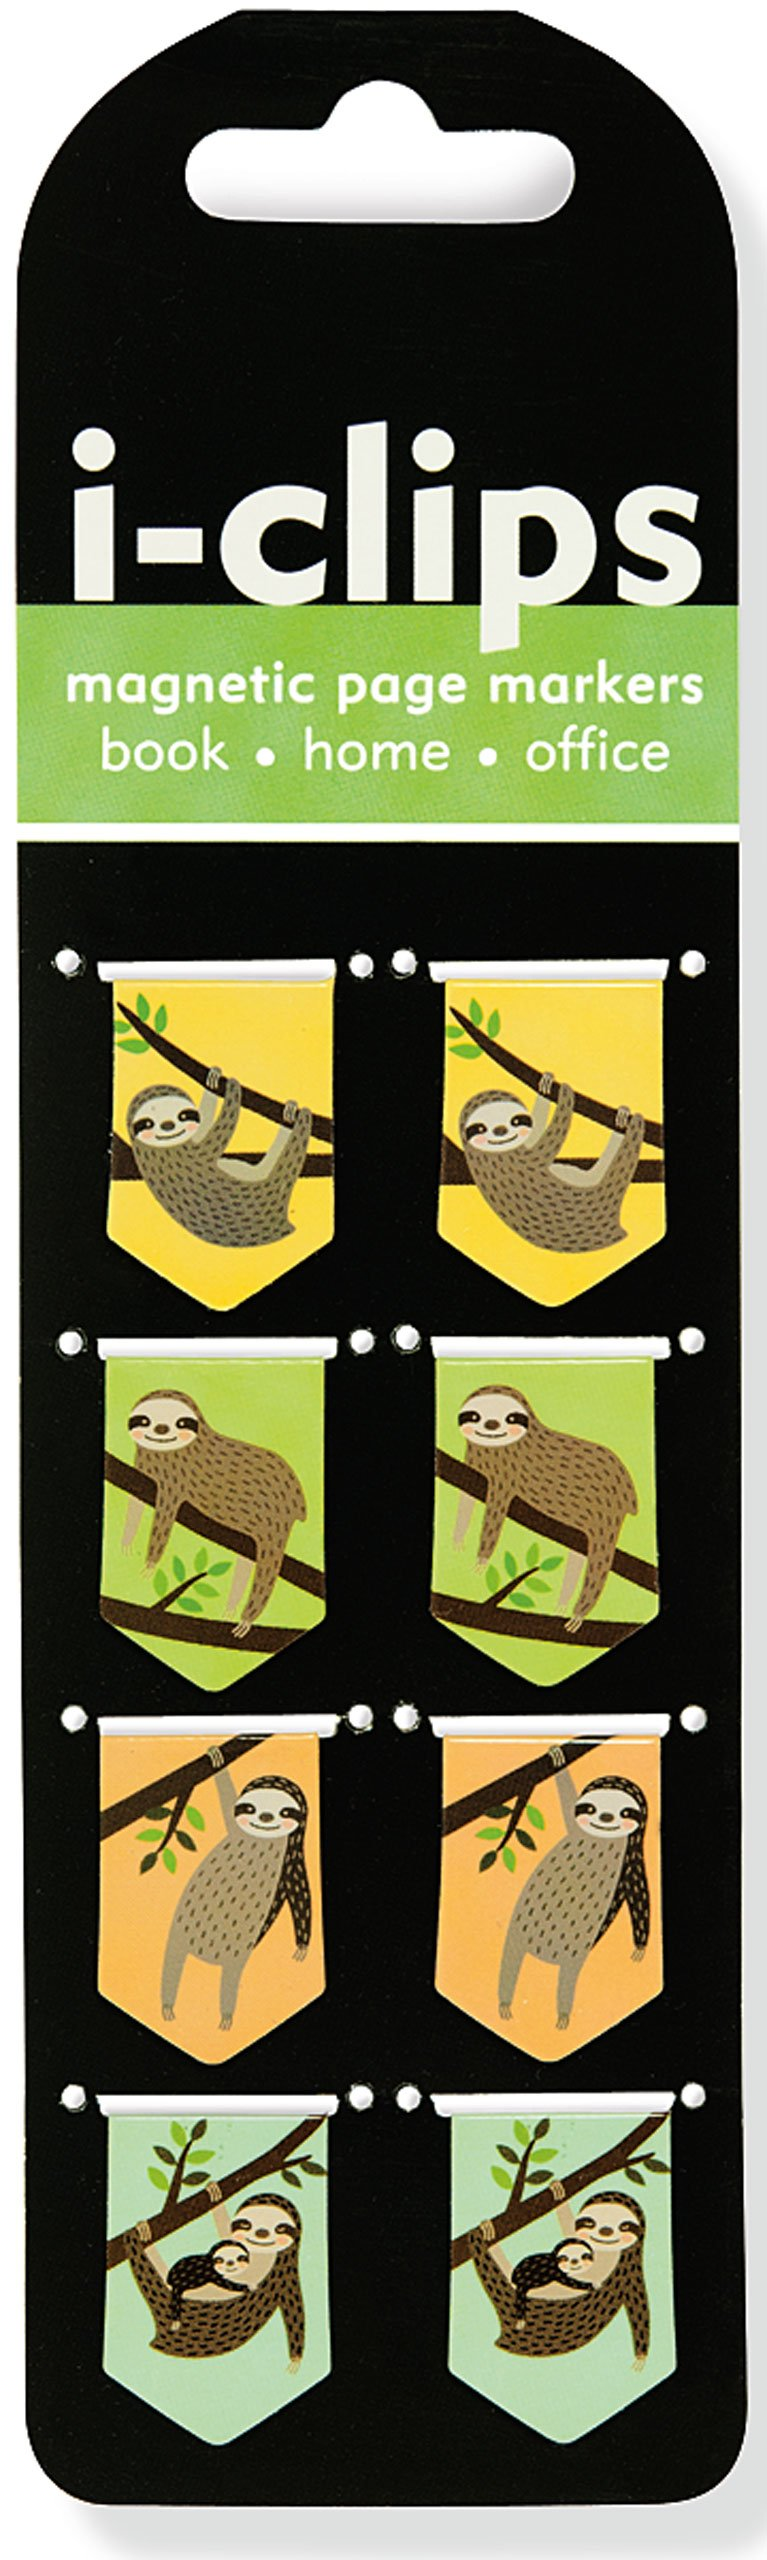 Sloths I-Clips Magnetic Page Markers (Set Of 8 Magnetic Bookmarks) - Book